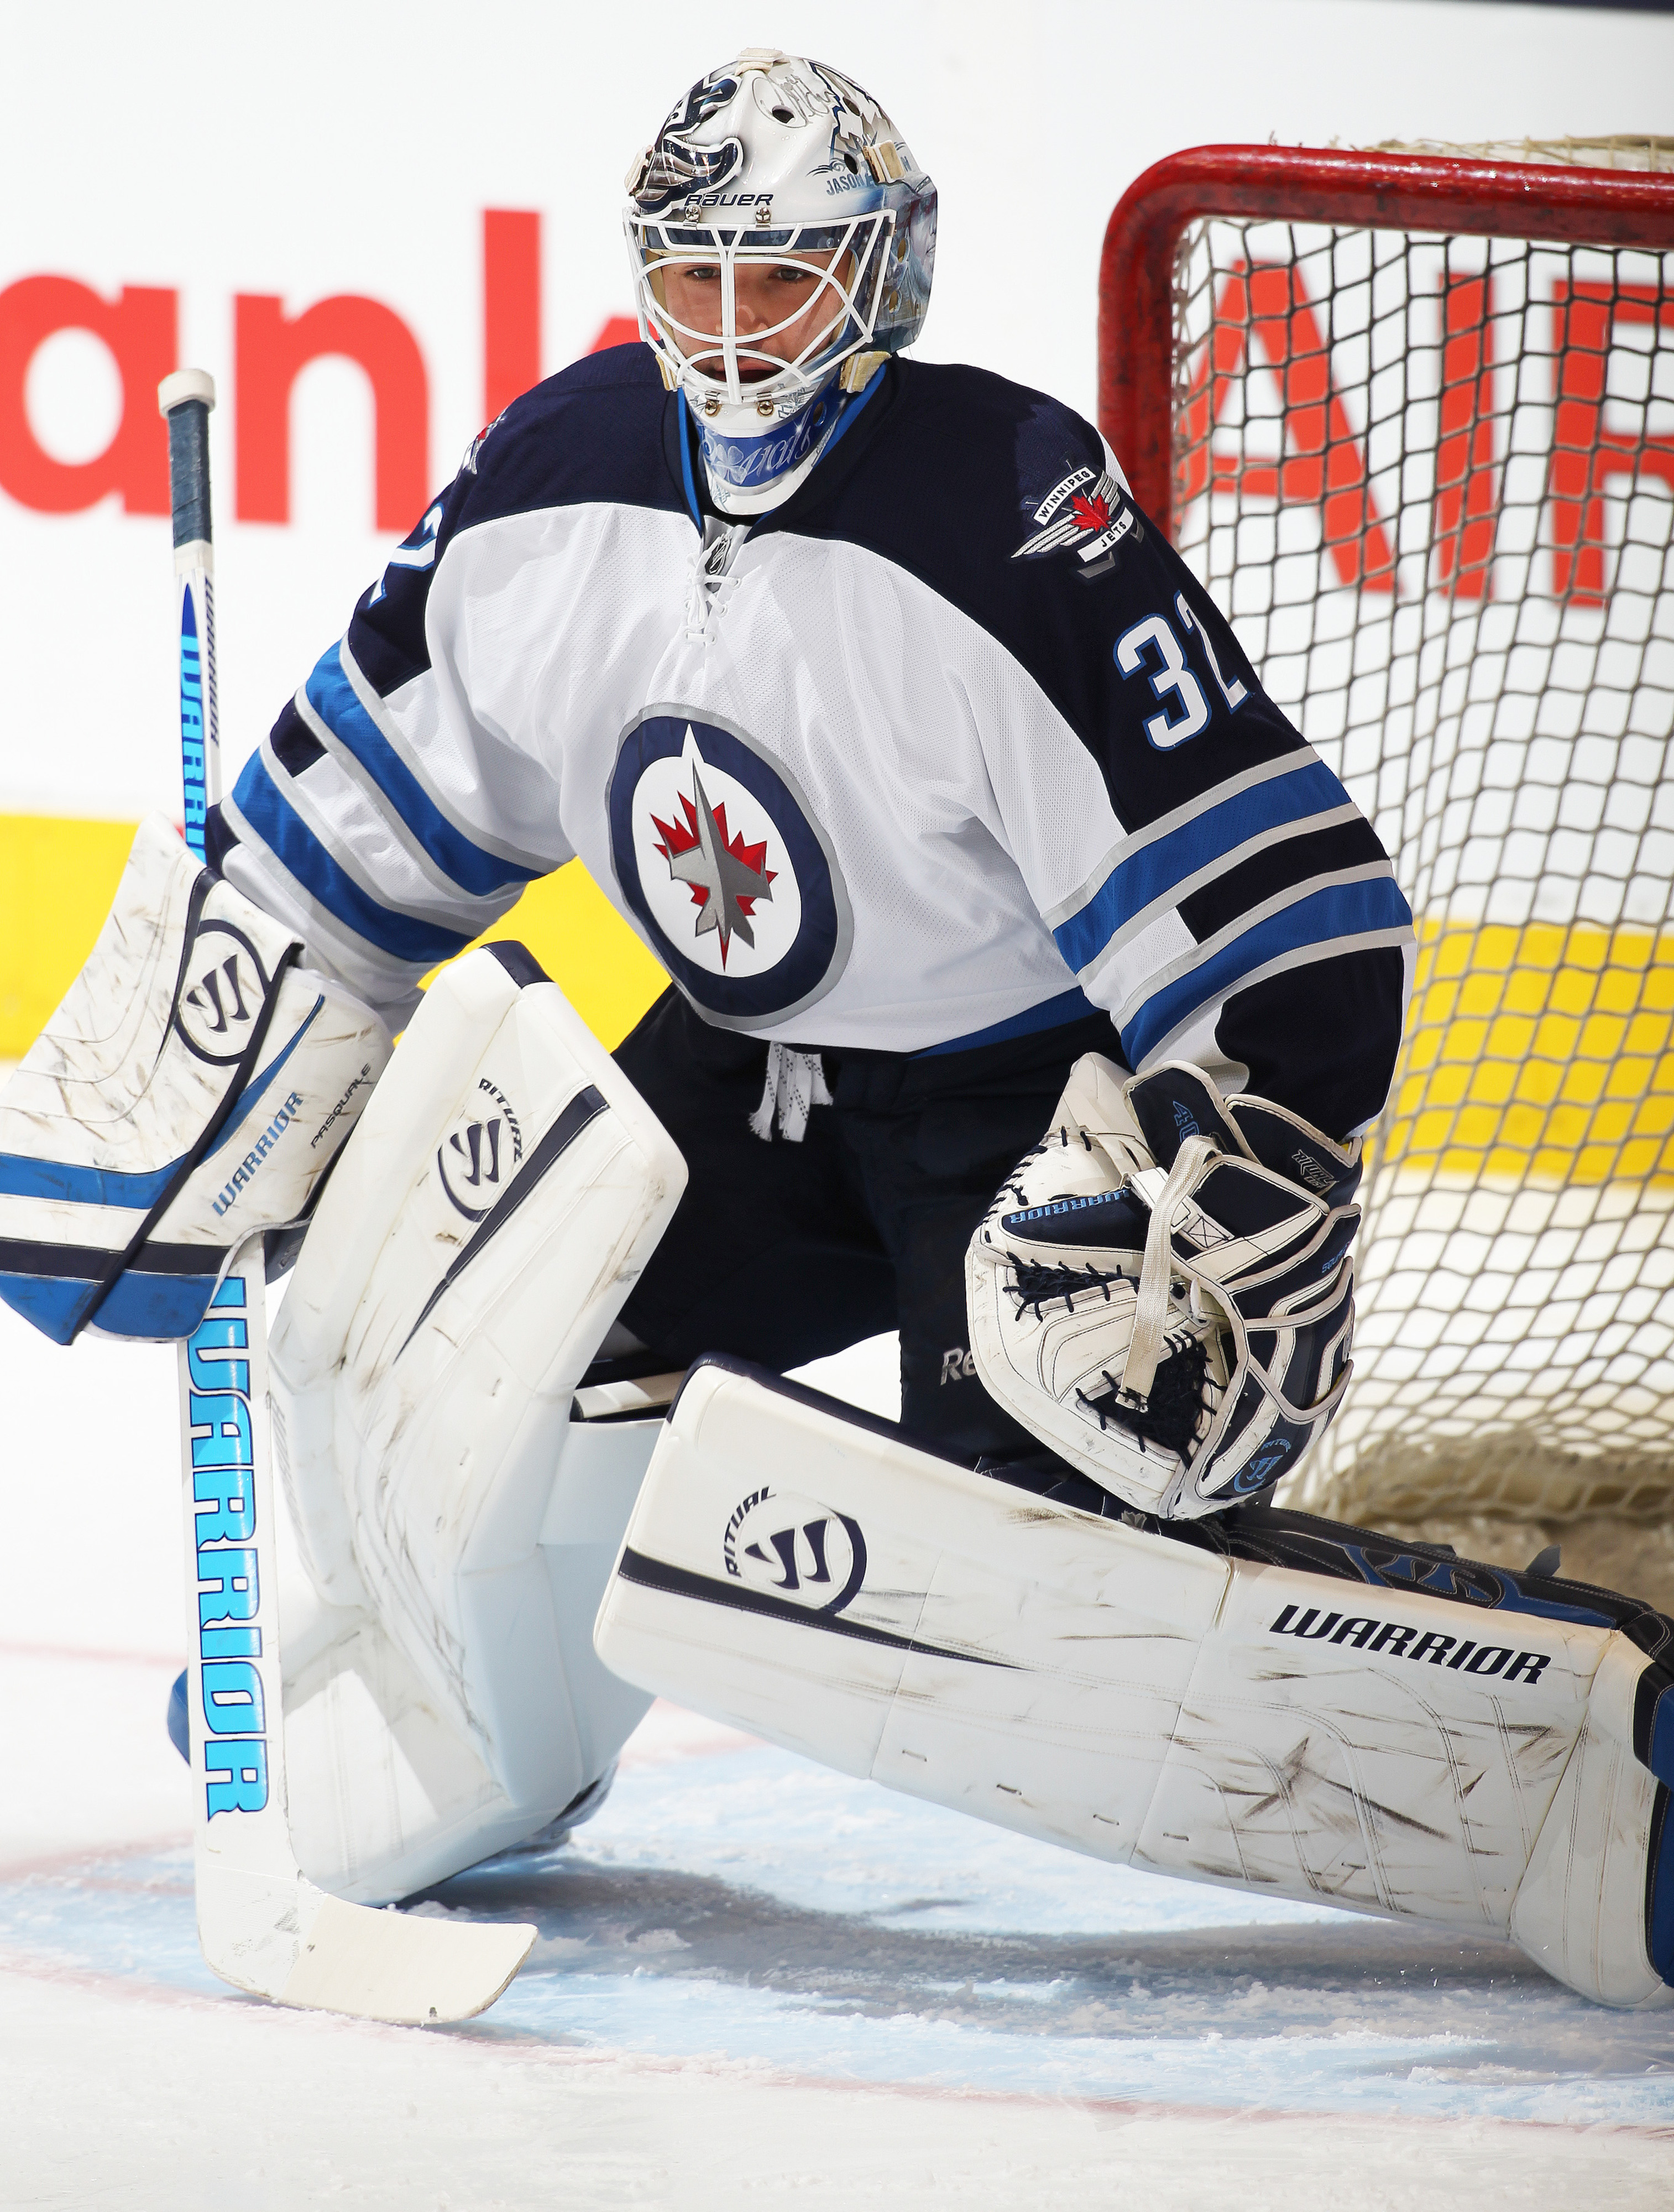 Eddie Pasquale, along with Zach Redmond and Michael Hutchinson, have signed one year contracts with the Jets